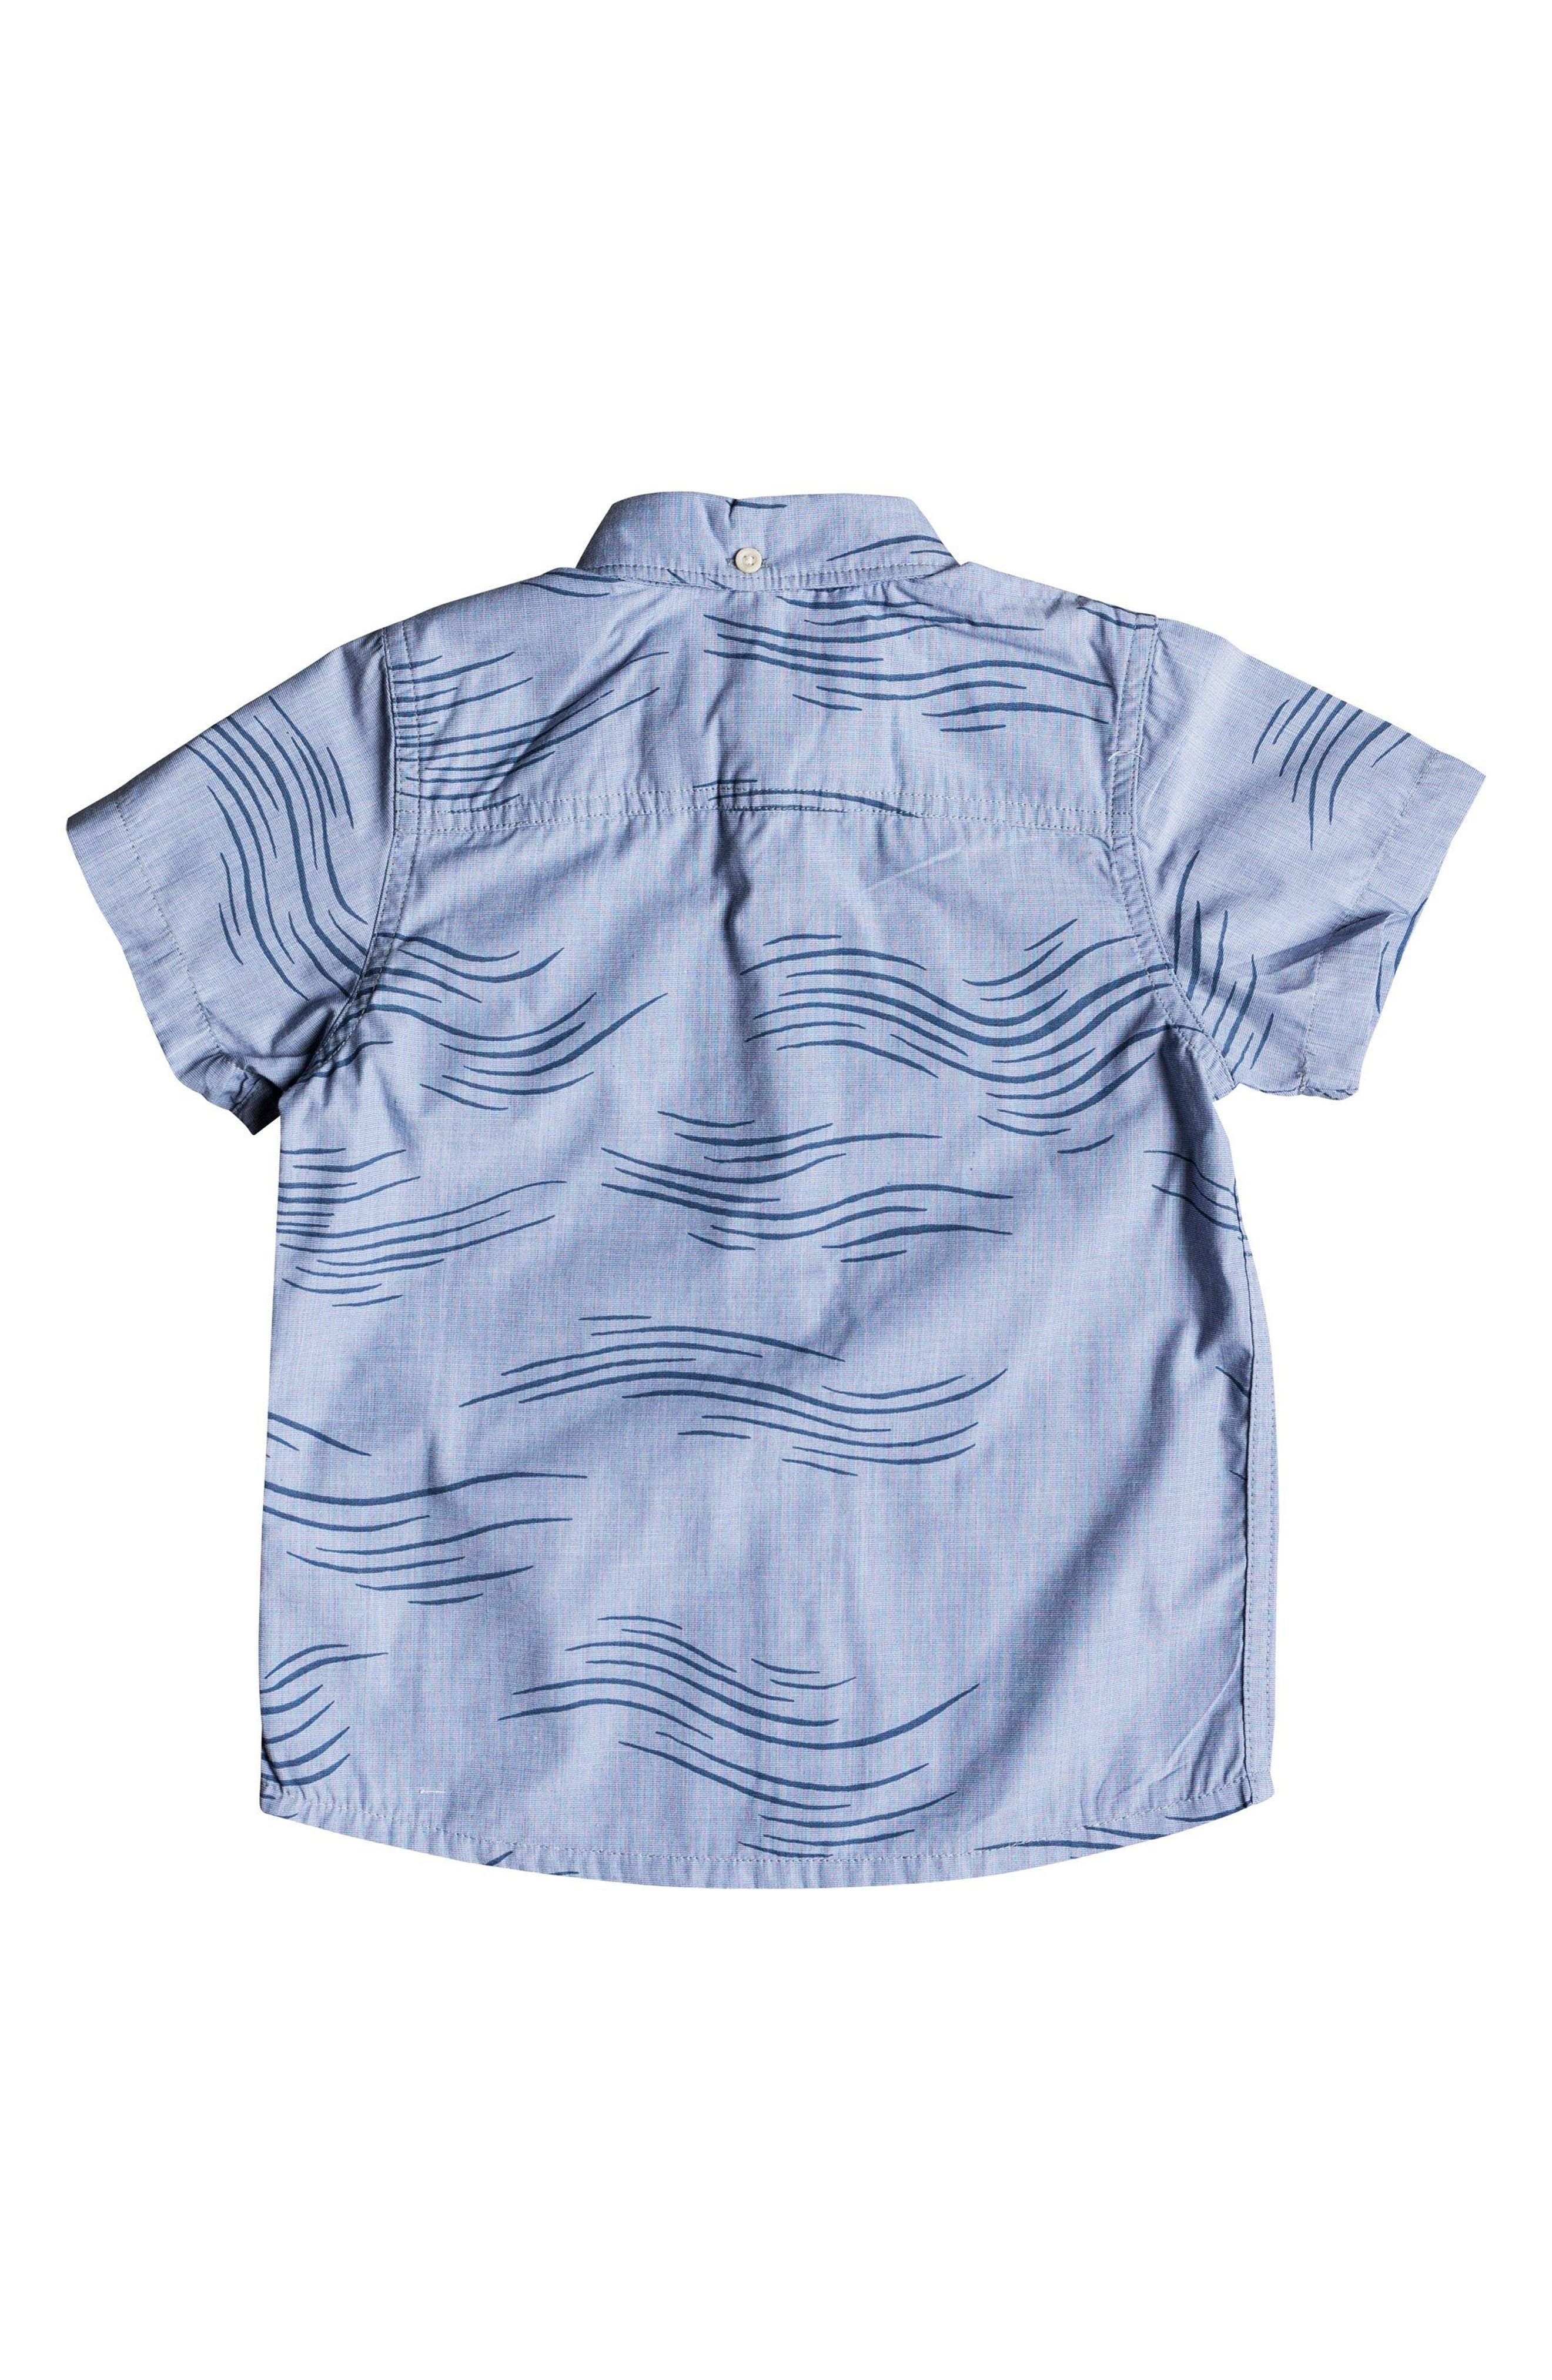 Valley Groove Woven Shirt,                             Alternate thumbnail 2, color,                             Bijou Blue